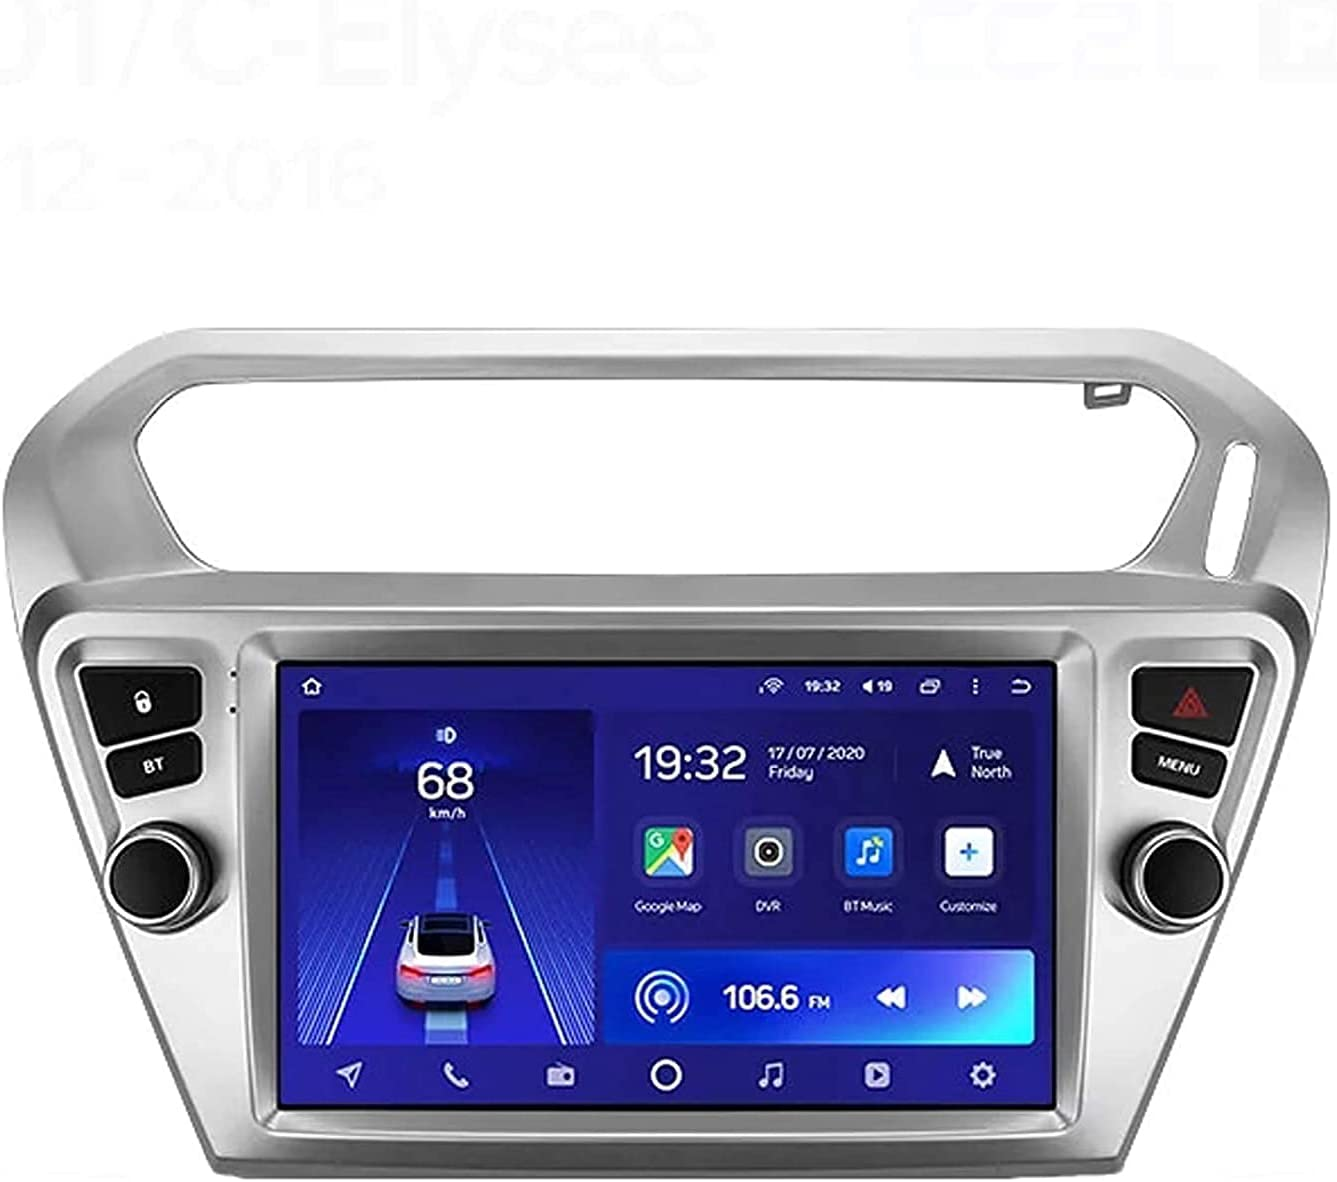 Android 10.0 Car Stereo Sat Nav Peu-geot IPS 301 T for Financial sales sale 2012-2018 Complete Free Shipping